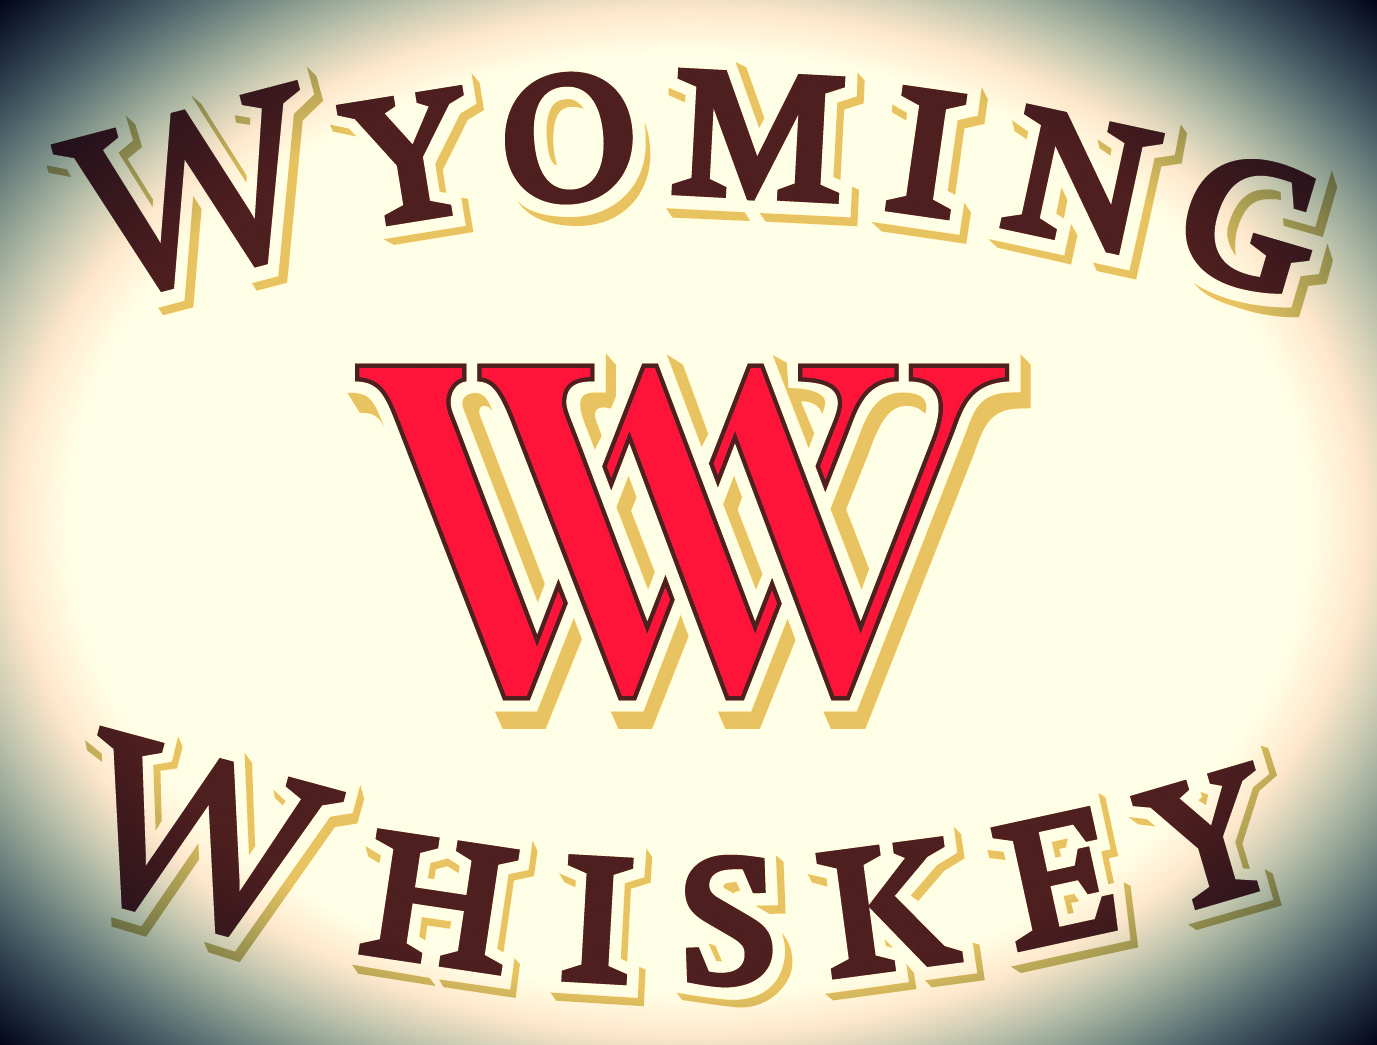 Wyoming Whiskey Review